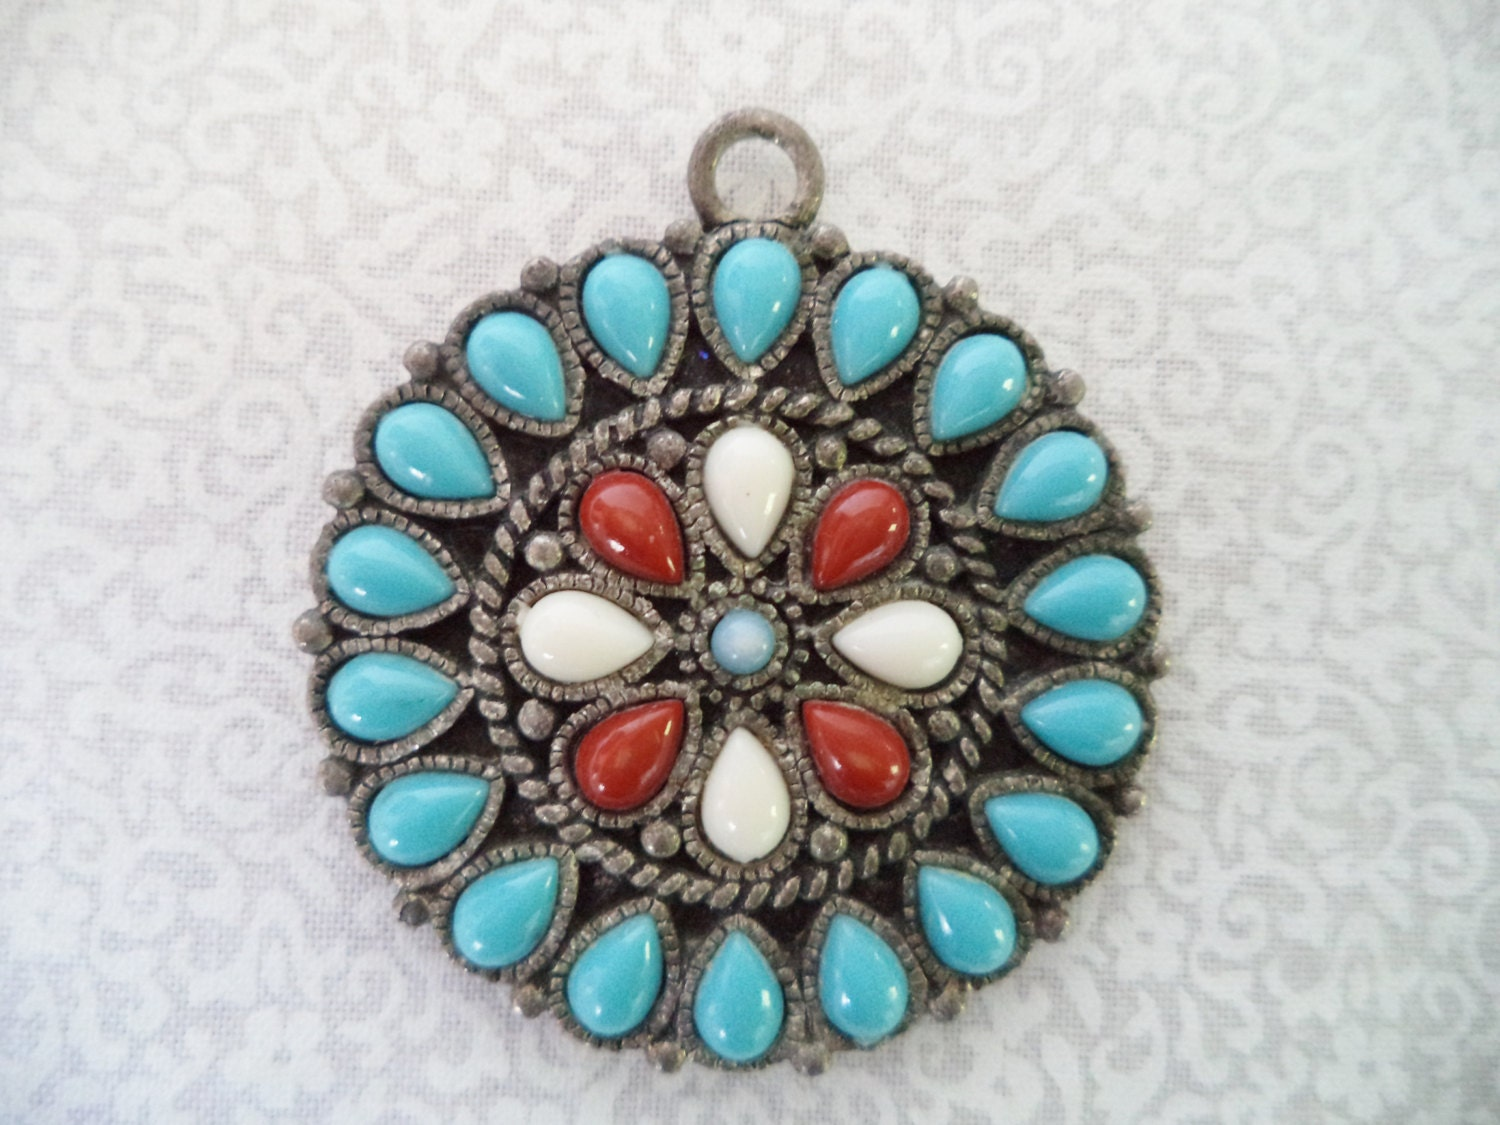 Vintage flower pendant/ faux turquoise and silver tone/ Native American inspired round pendant - BohoRain